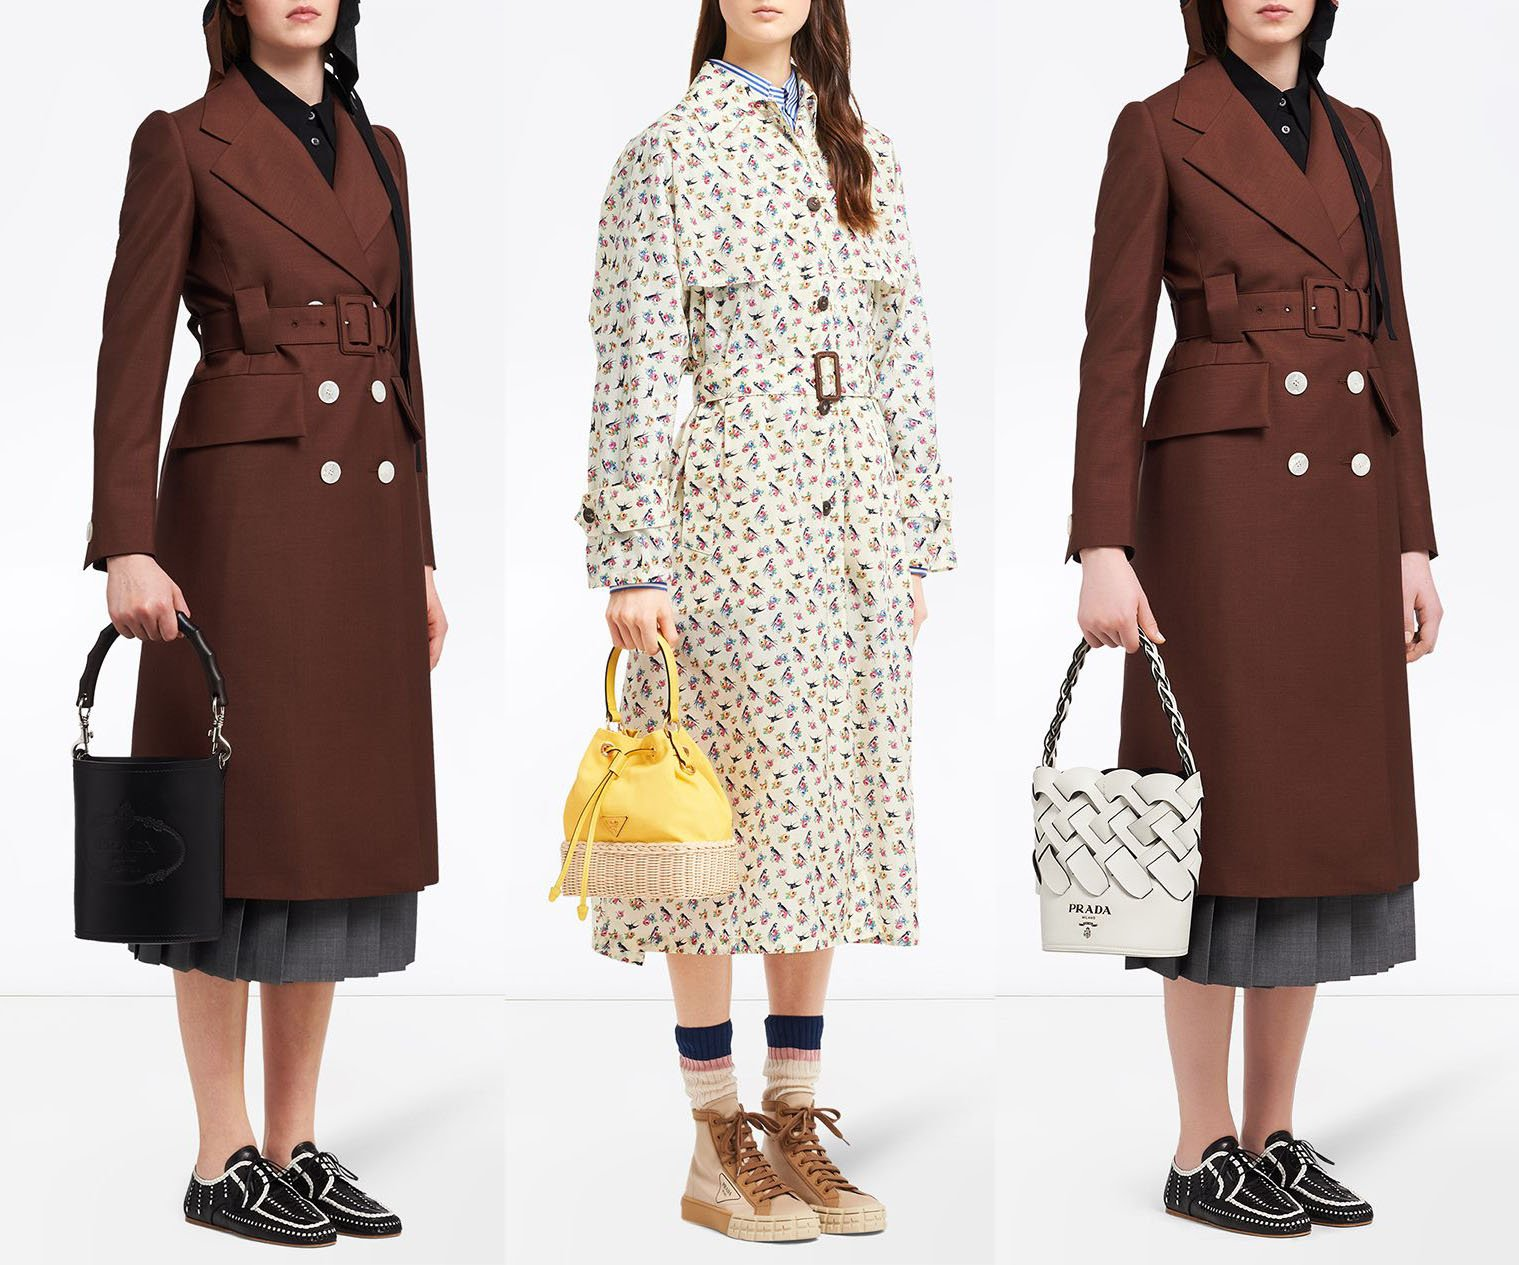 Prada also offers bucket bags in different styles, including one with a structured wooden handle, another with a wicker base, and a woven bucket bag